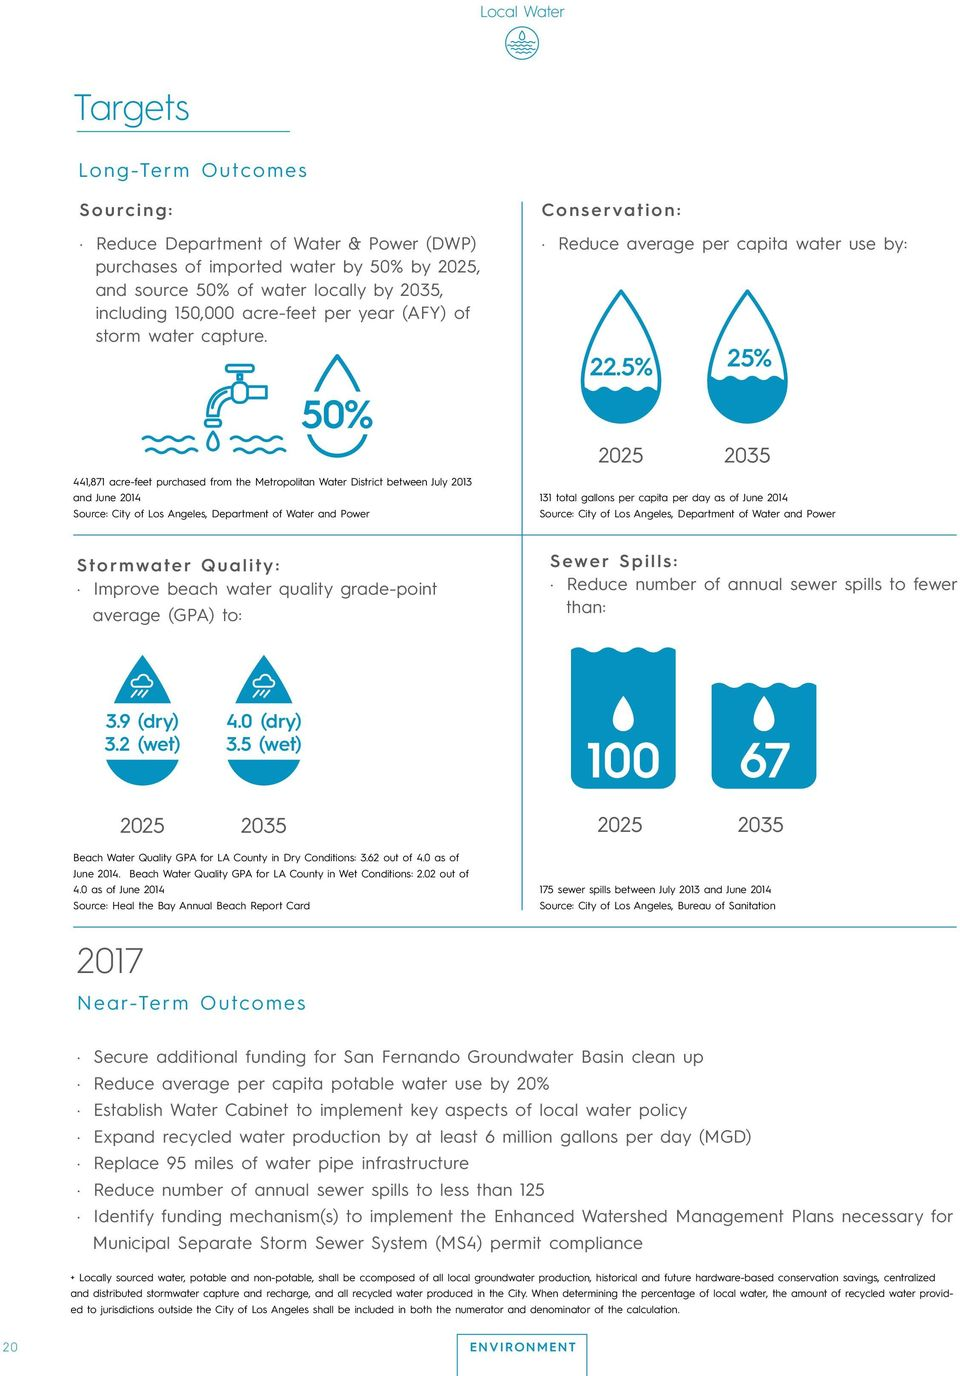 50% 441,871 acre-feet purchased from the Metropolitan Water District between July 2013 and June 2014 Source: City of Los Angeles, Department of Water and Power Conservation: Reduce average per capita